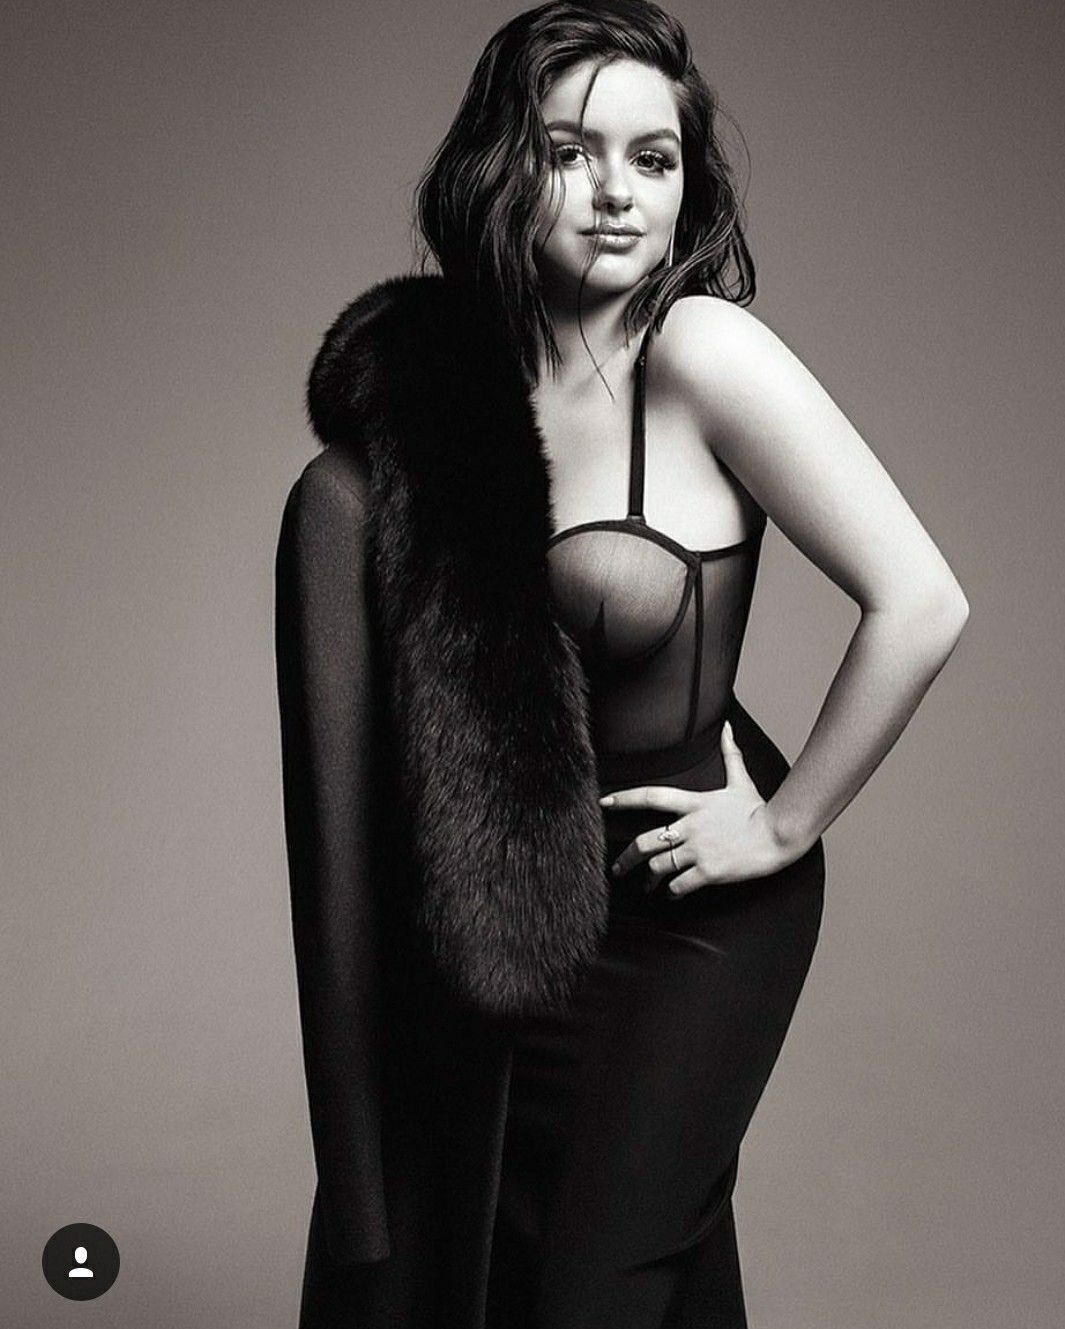 ariel-winter-hot-photoshoot